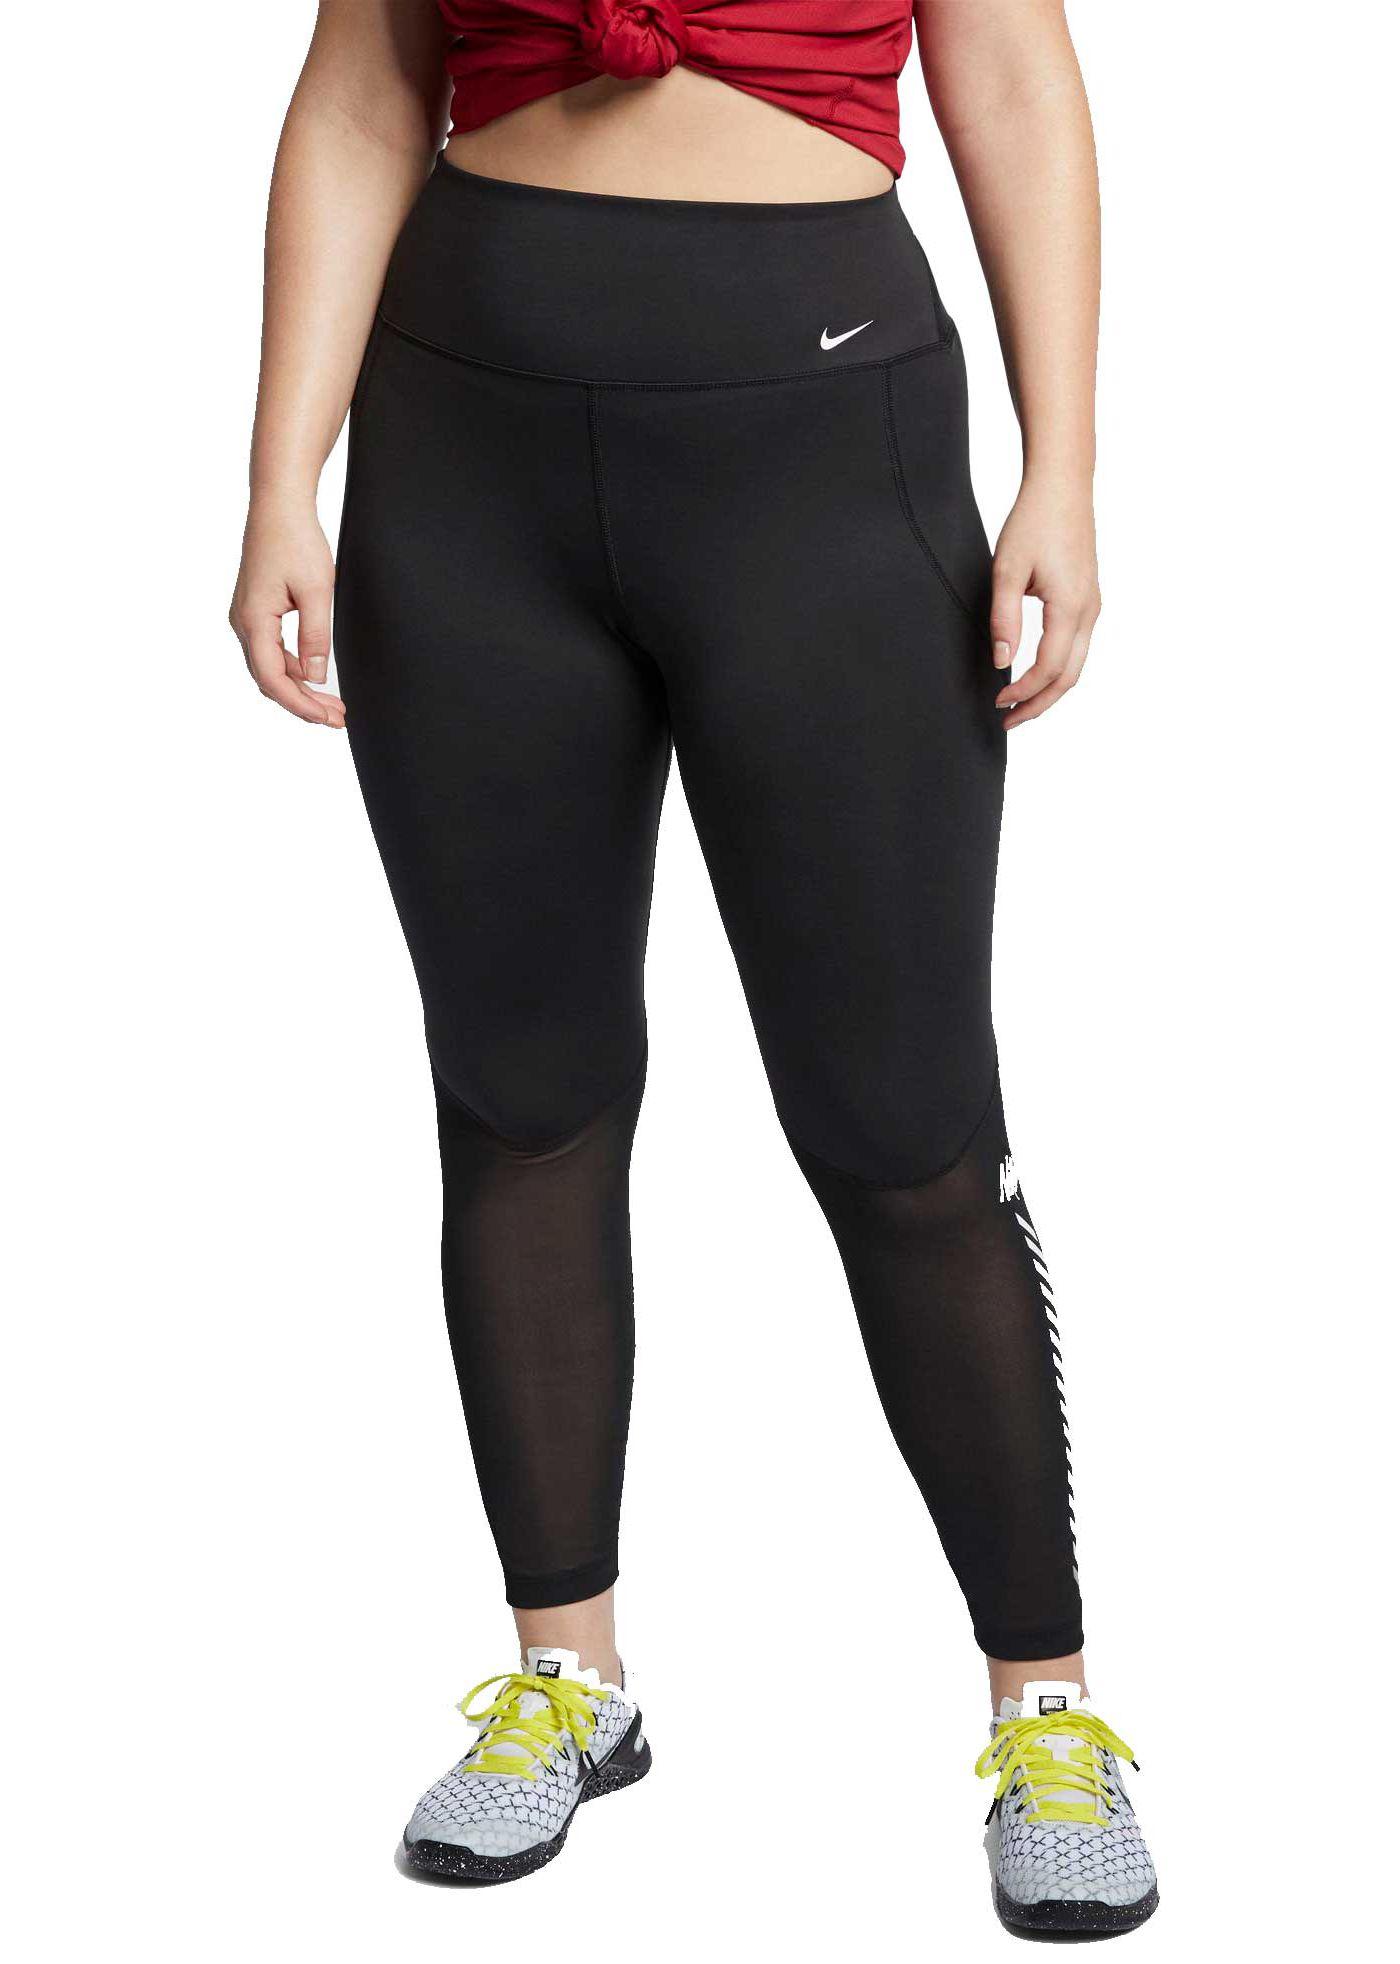 Nike One Women's Plus Size 7/8 Graphic Training Tights